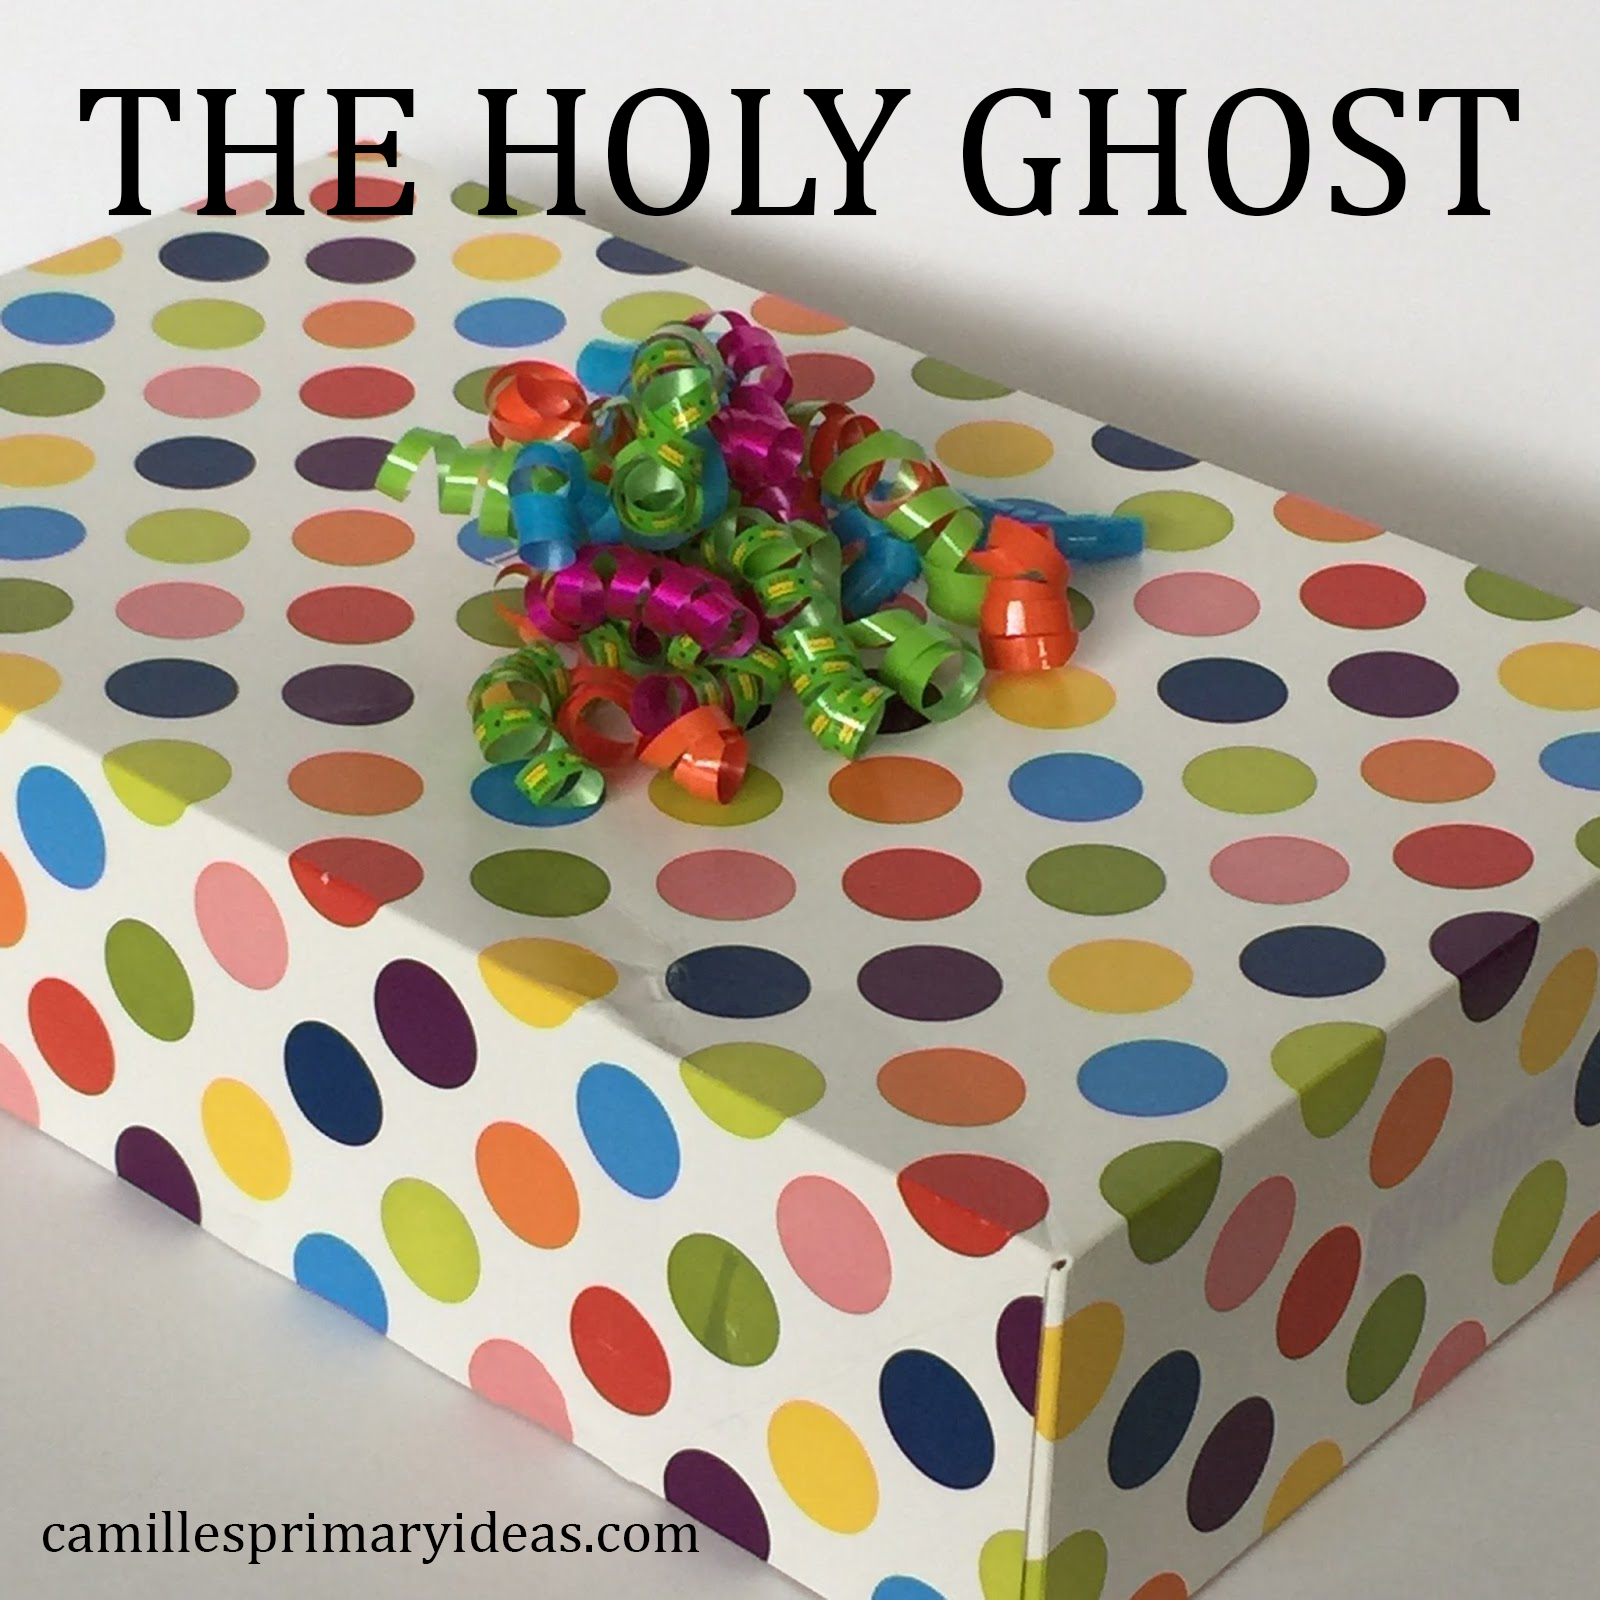 Camille's Primary Ideas: The Holy Ghost